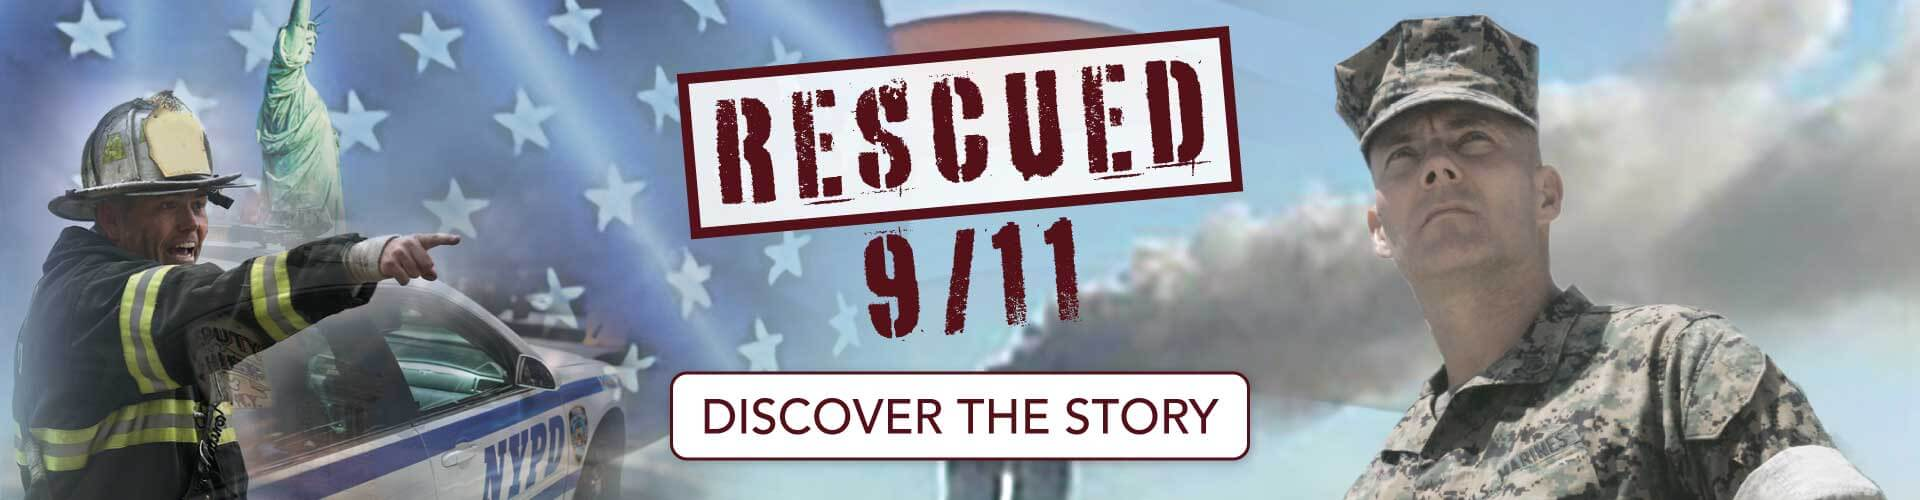 Rescued 911 Story Link